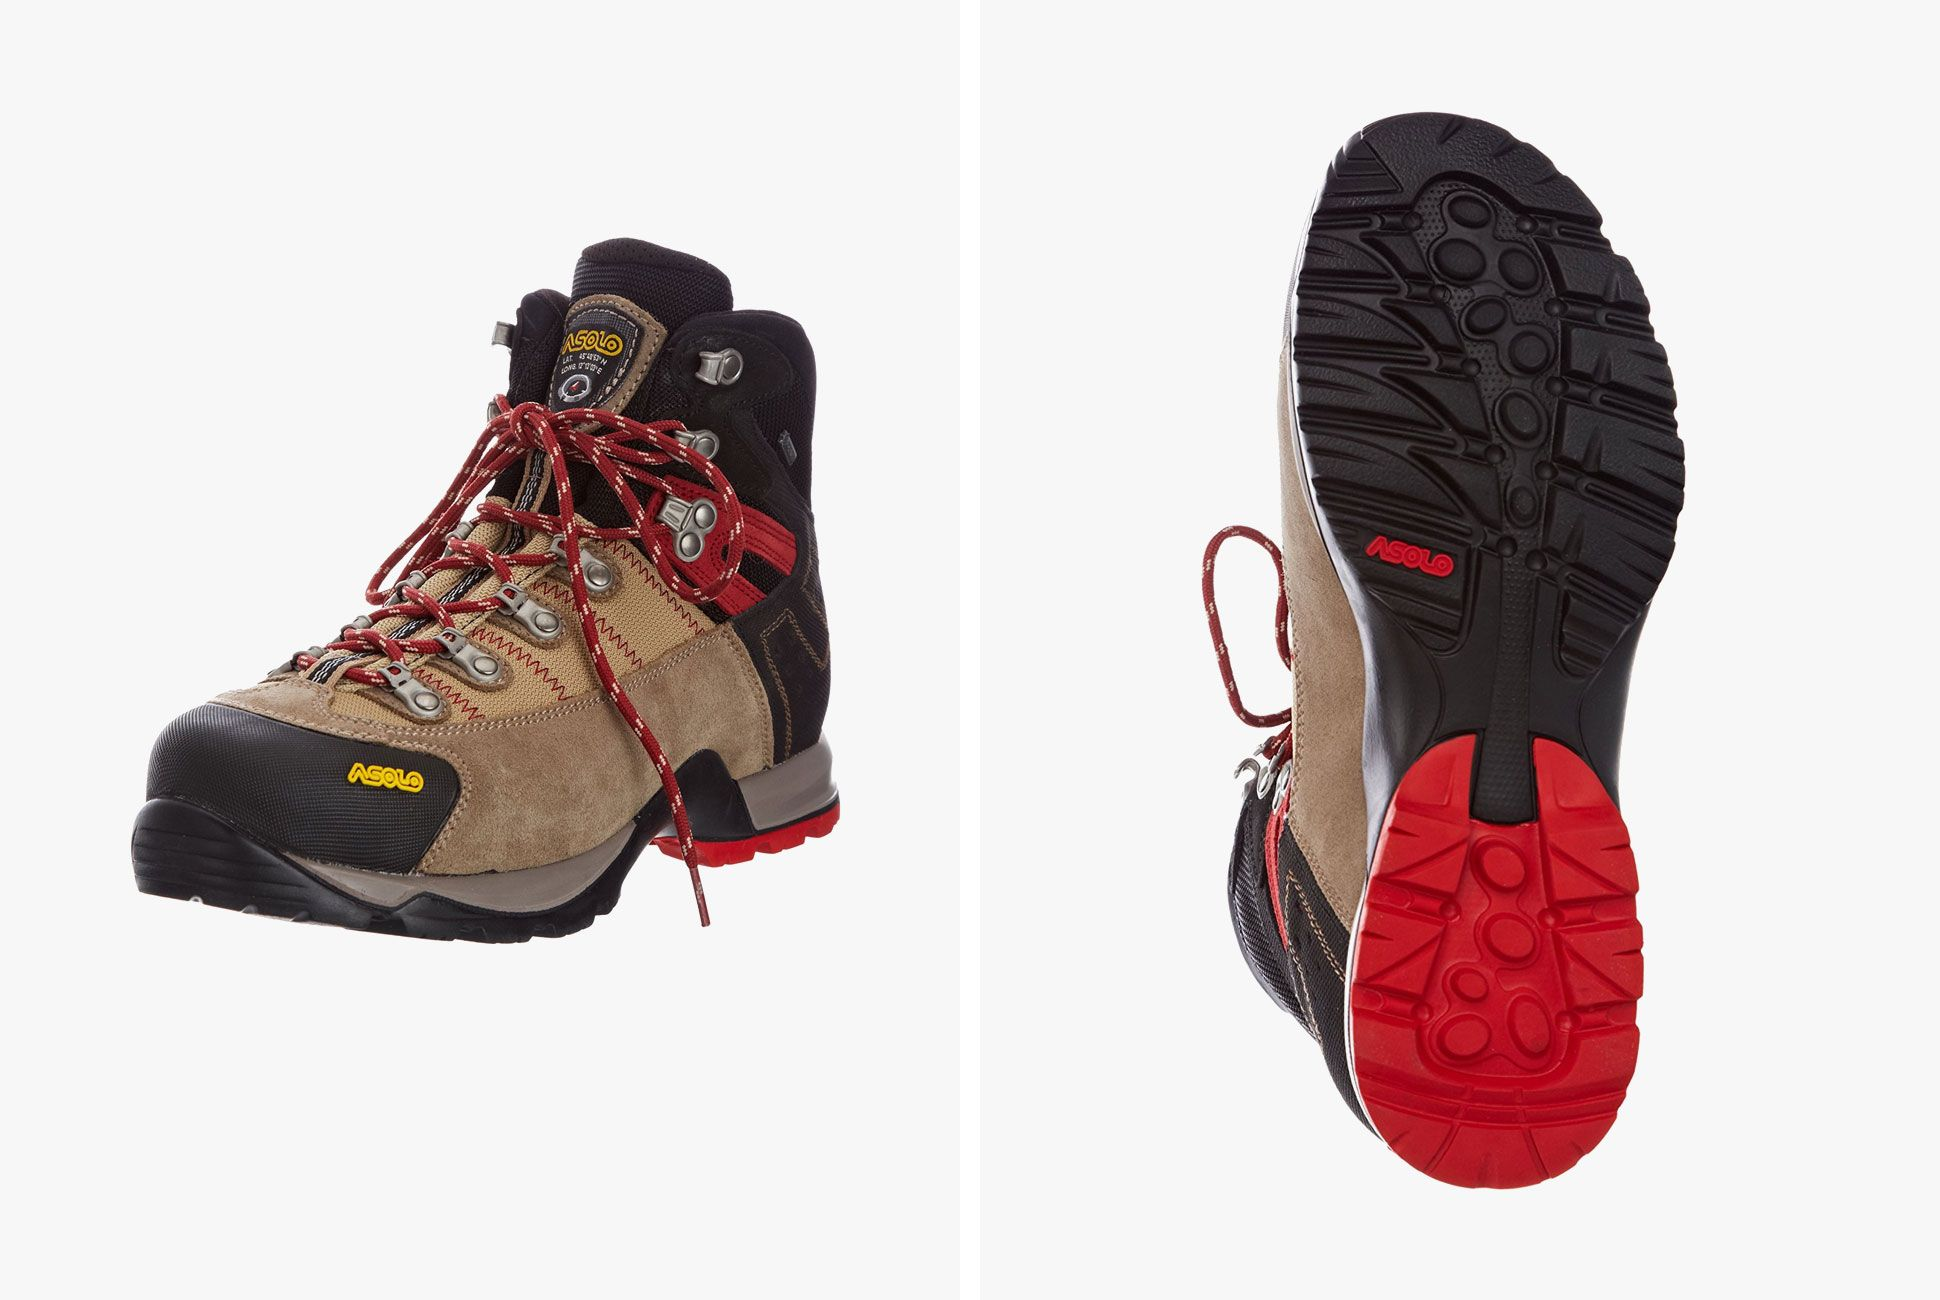 The Best Hiking Boots of 2017 - Gear Patrol